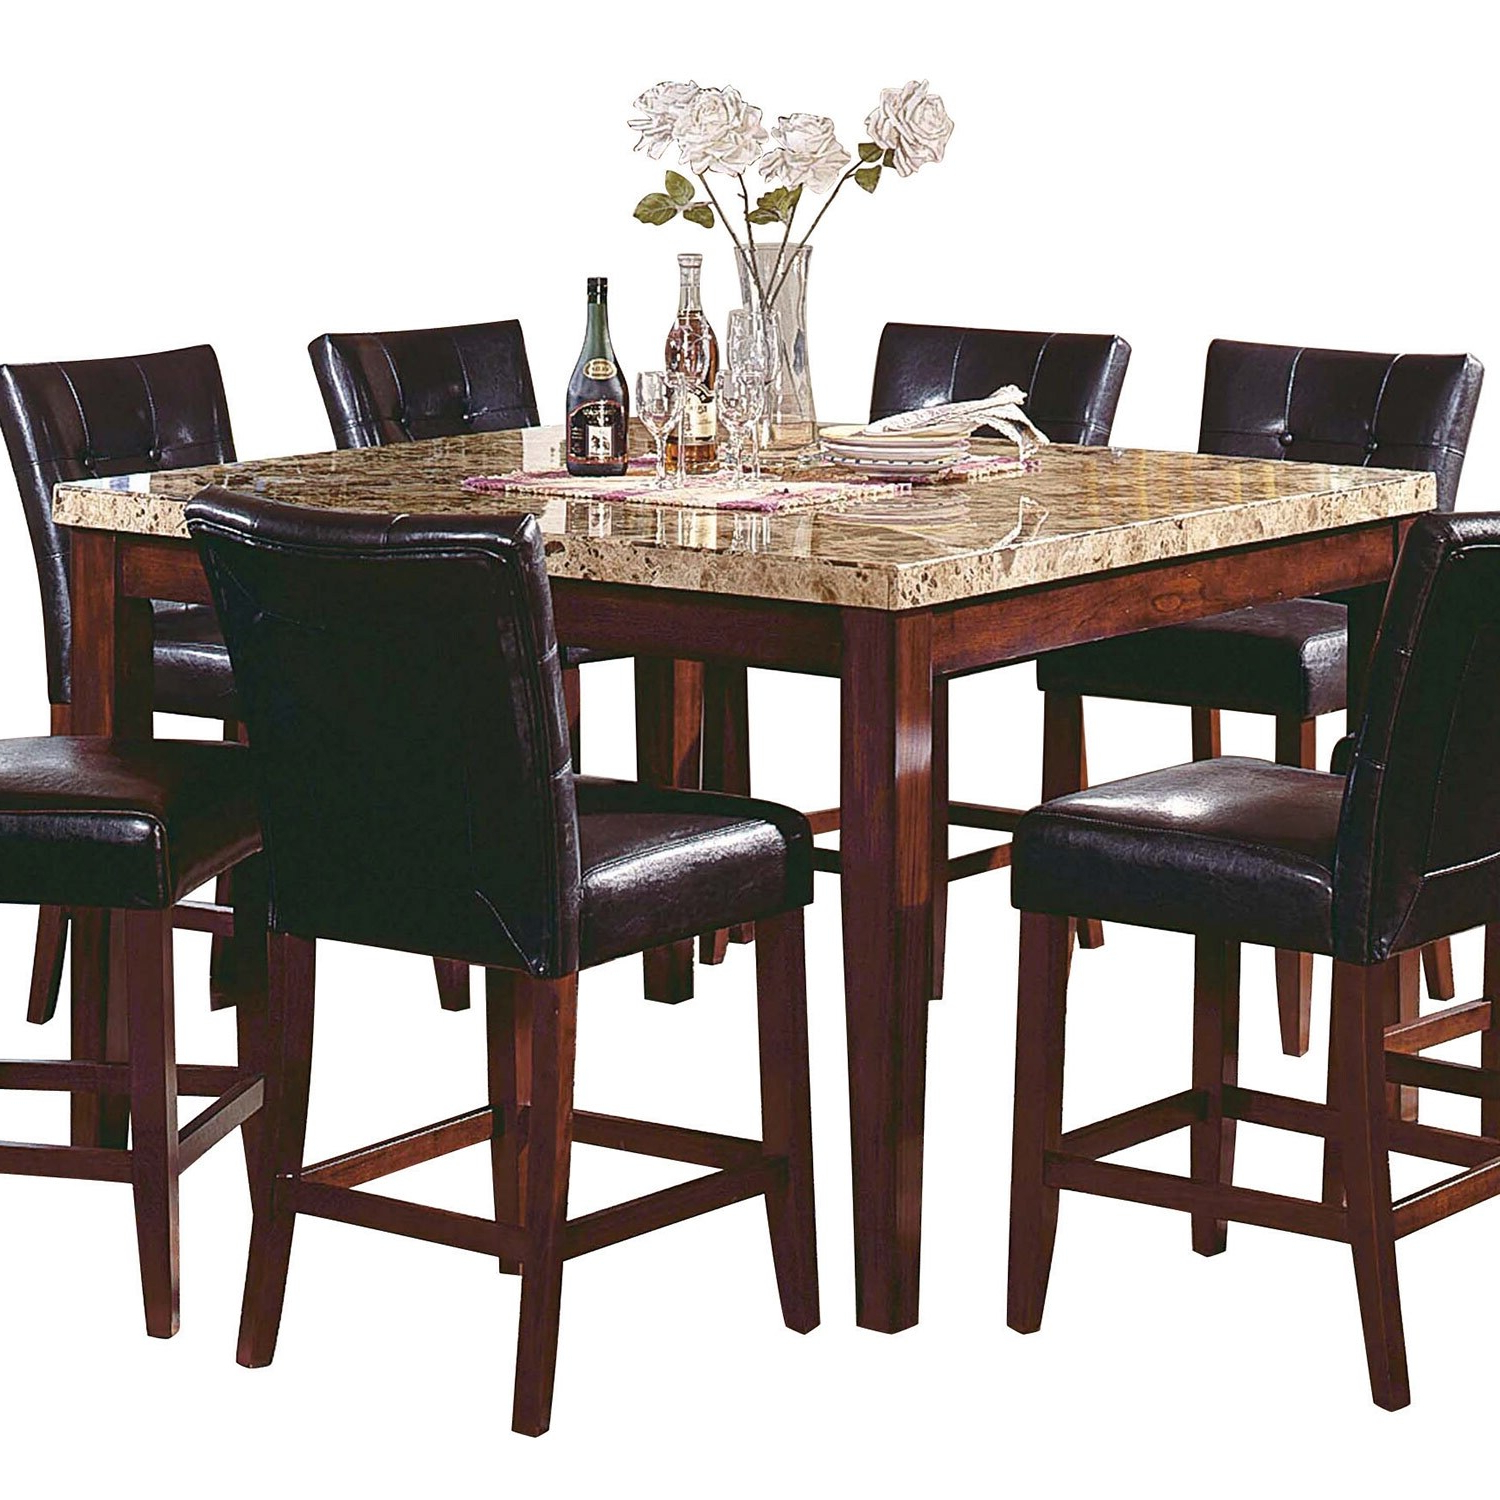 Desloge Counter Height Trestle Dining Tables Regarding Most Popular Montibello Counter Height Dining Table (View 13 of 20)